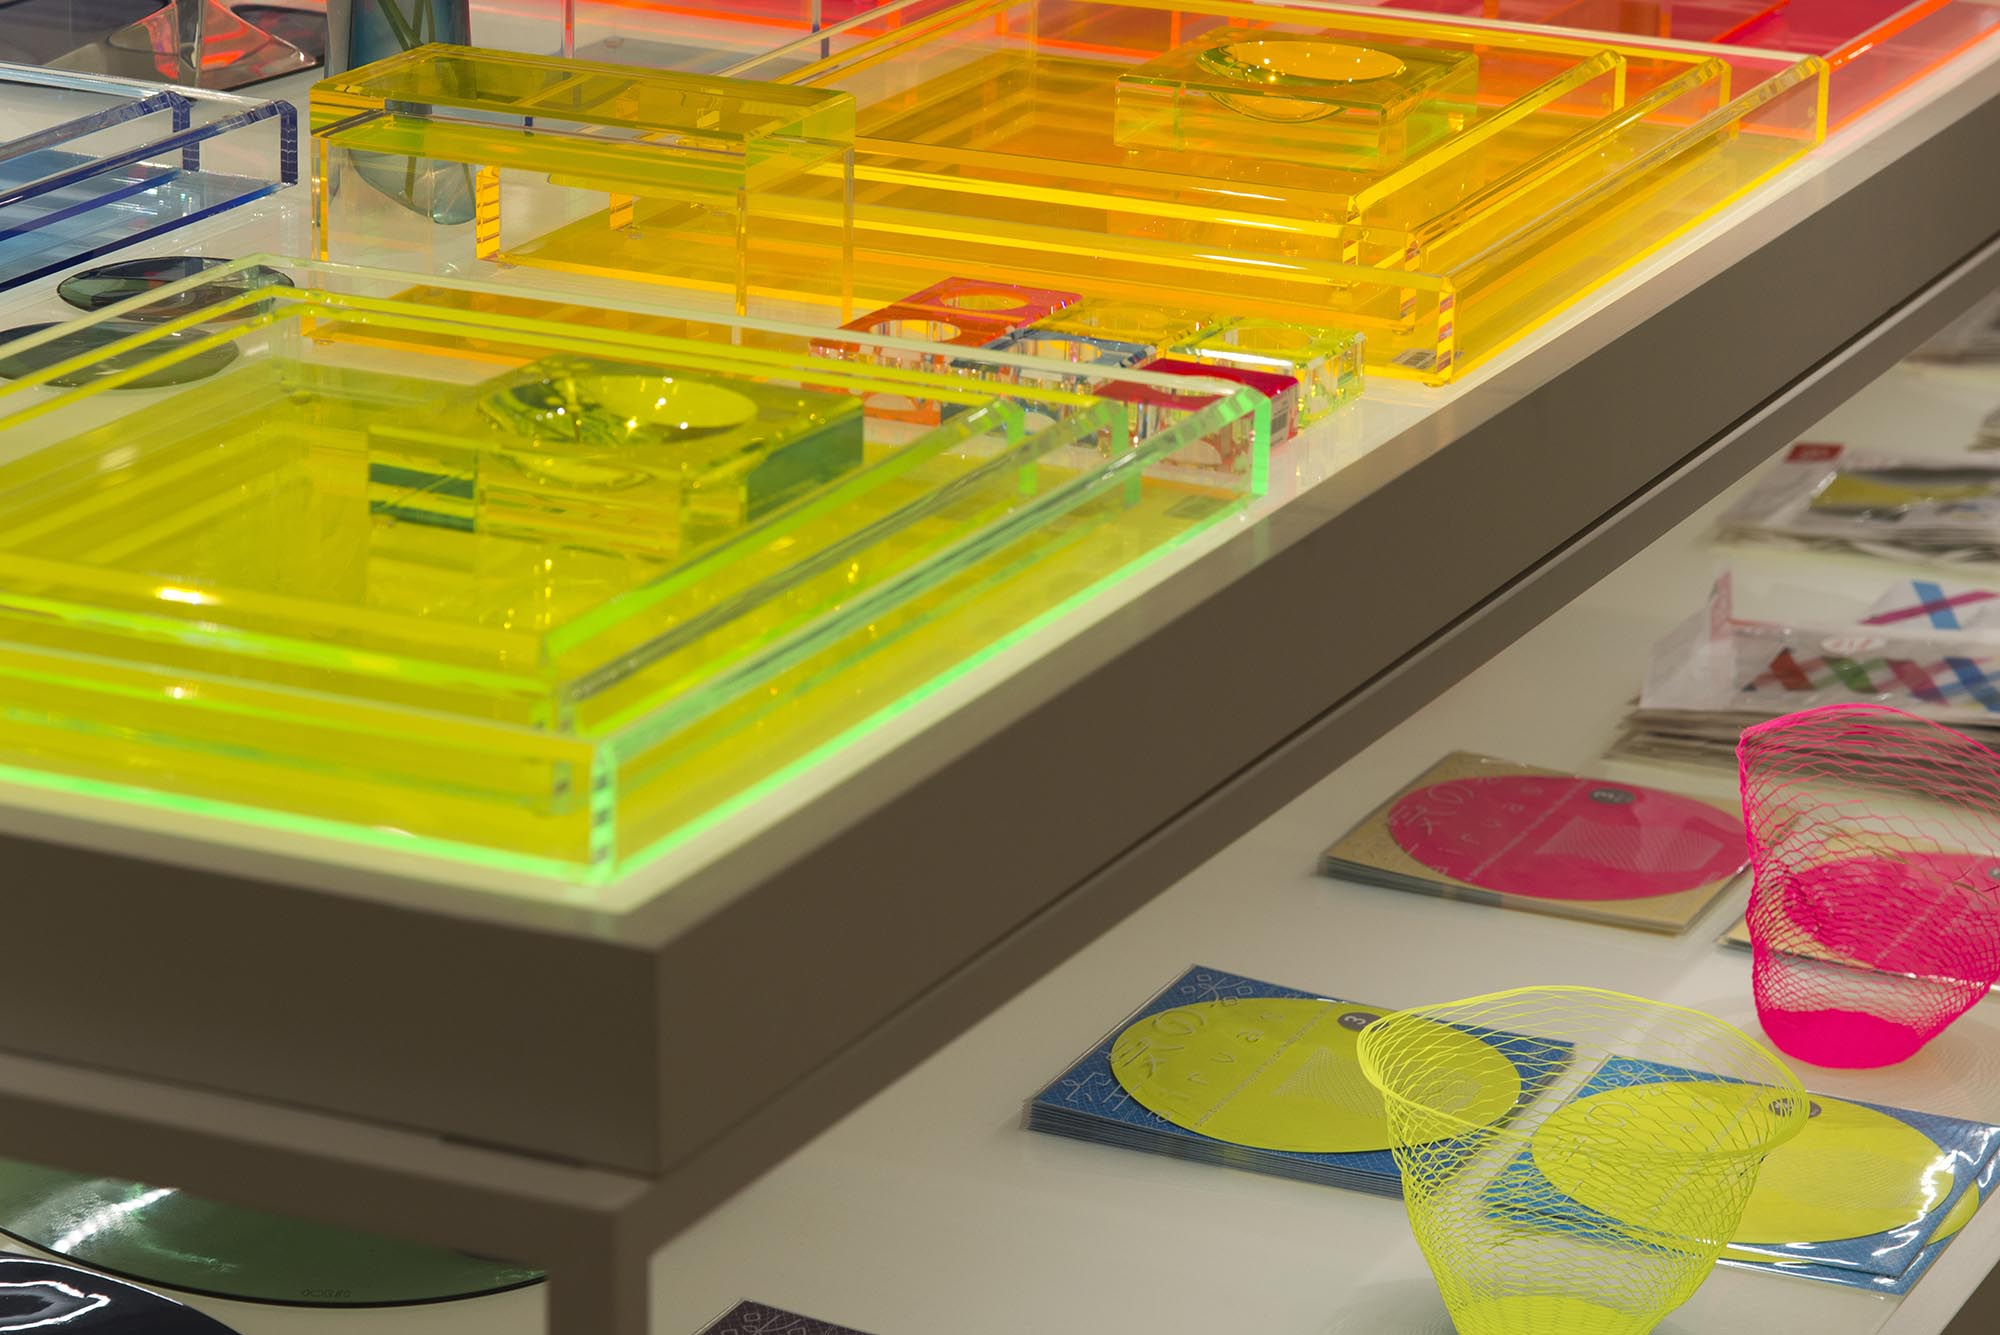 Bespoke LED lit display tables, The Conran Shop, Selfridges, London